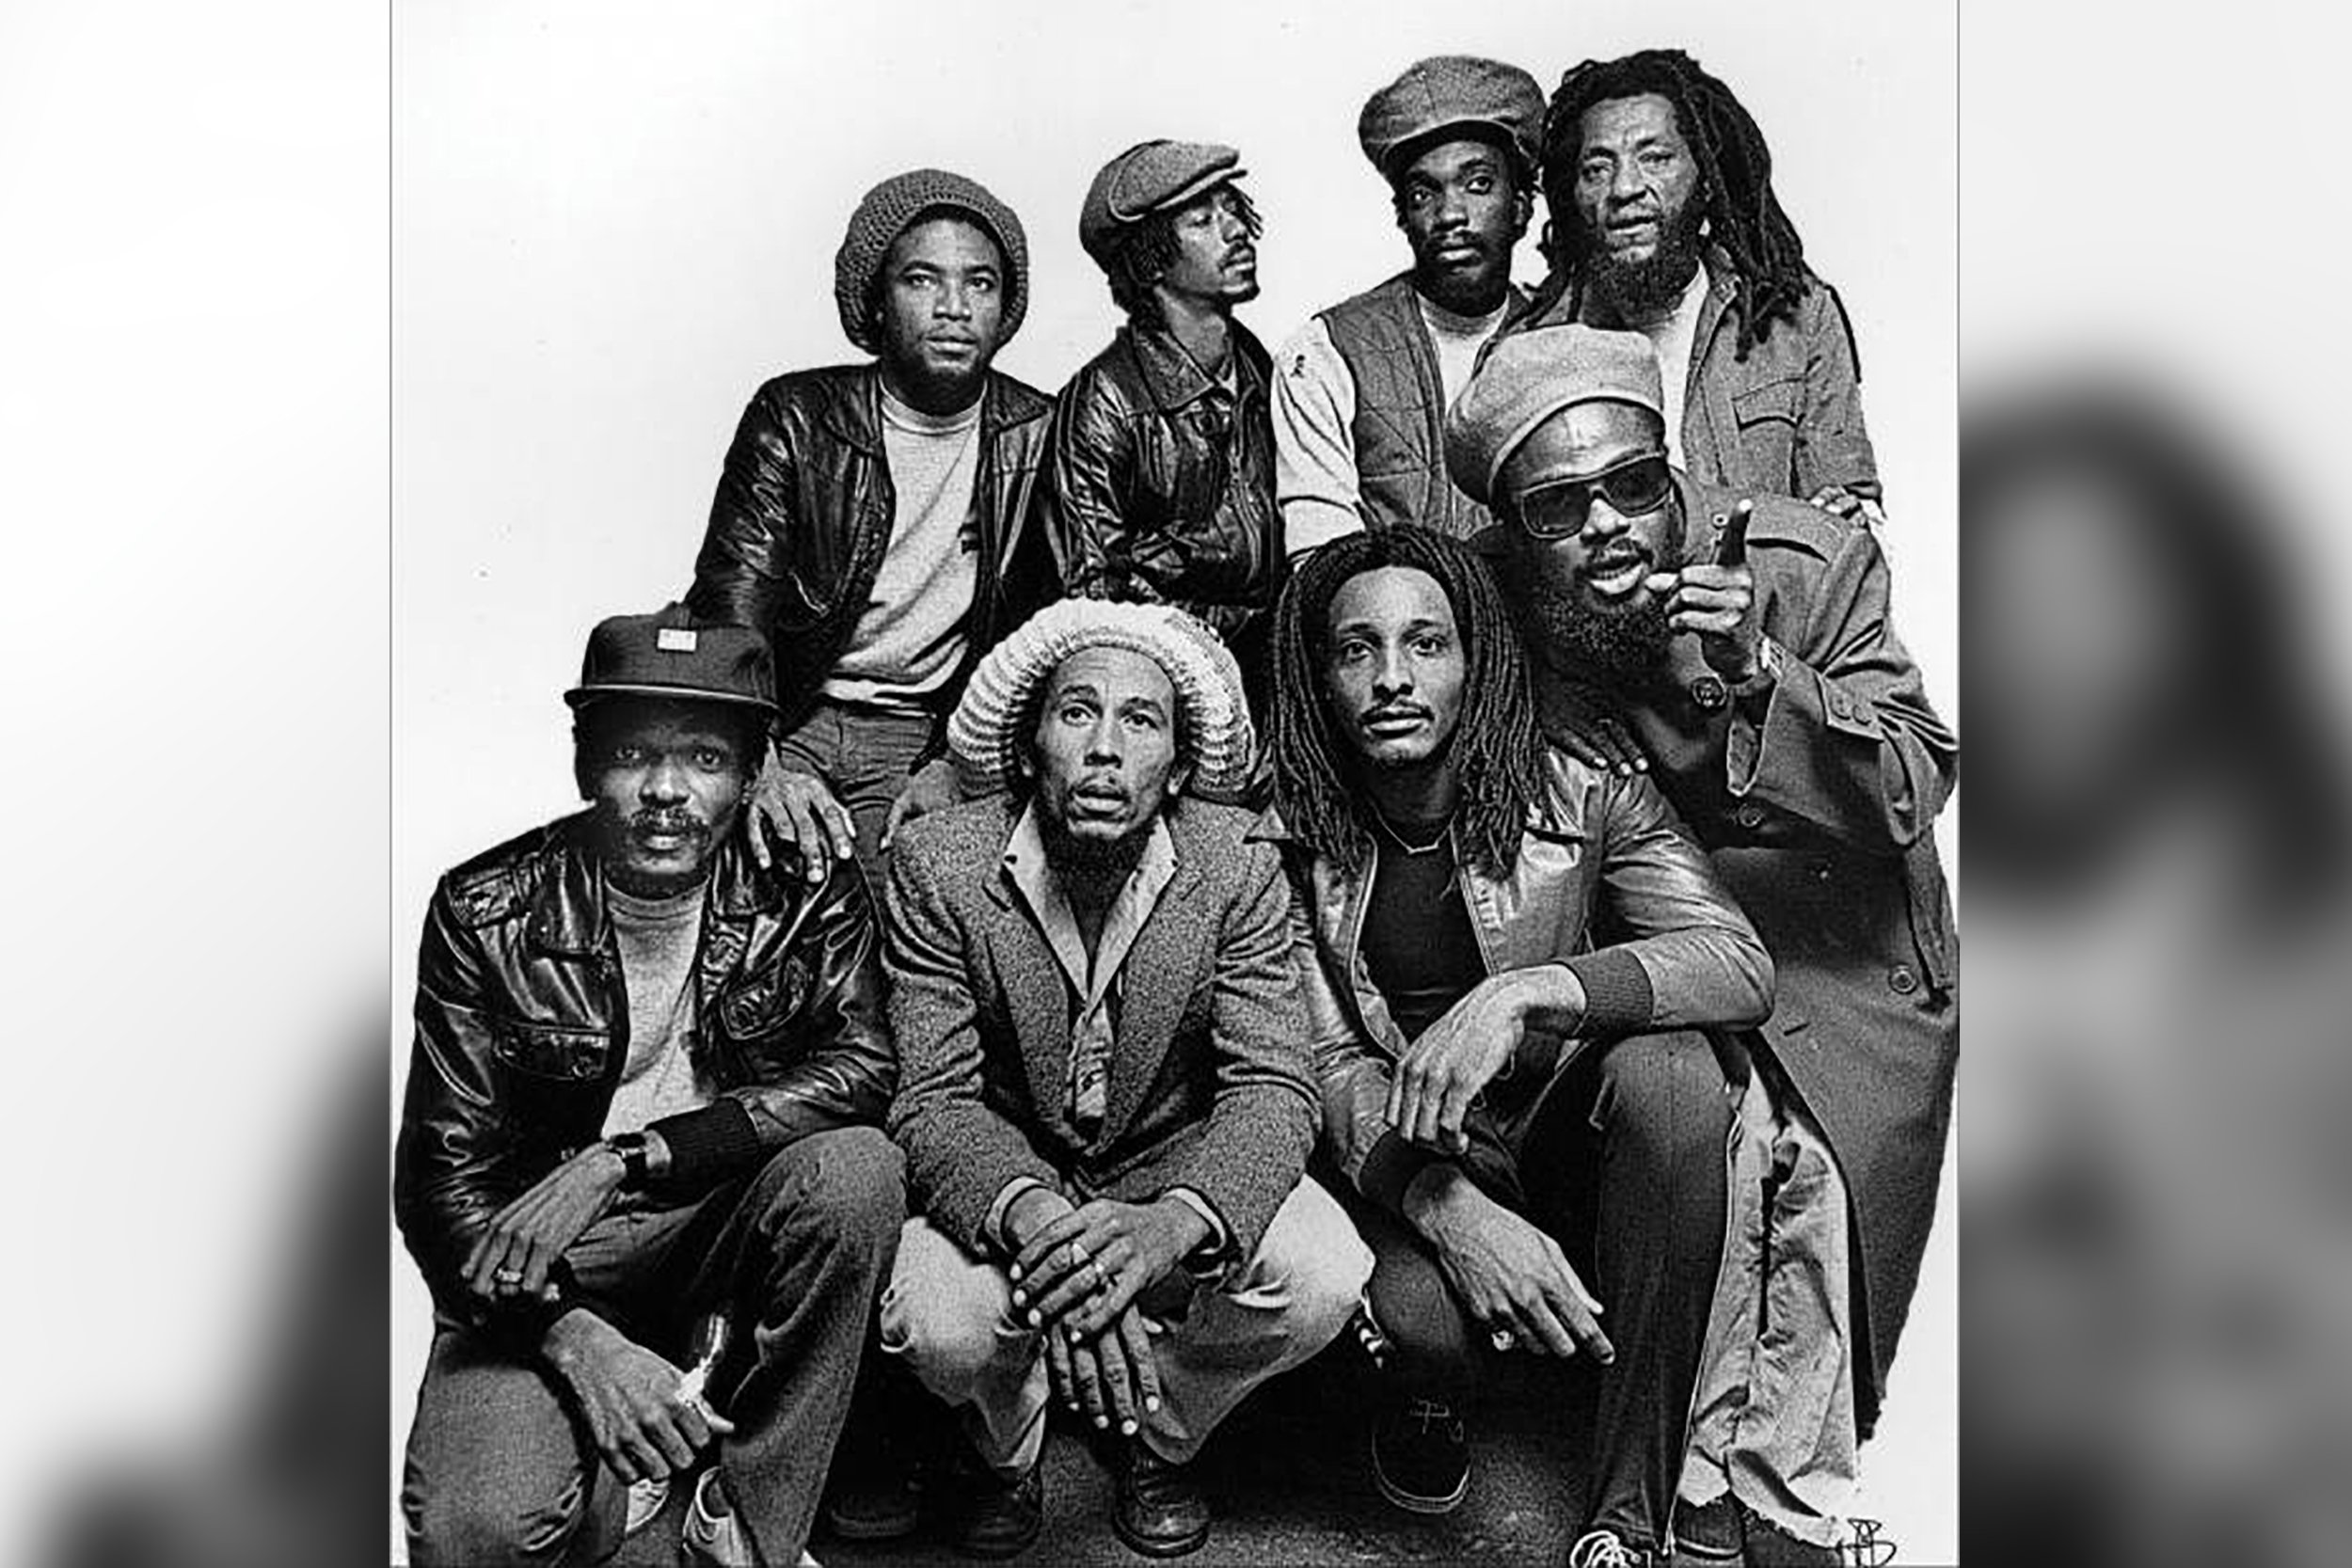 the origin story of bob marley and the wailers